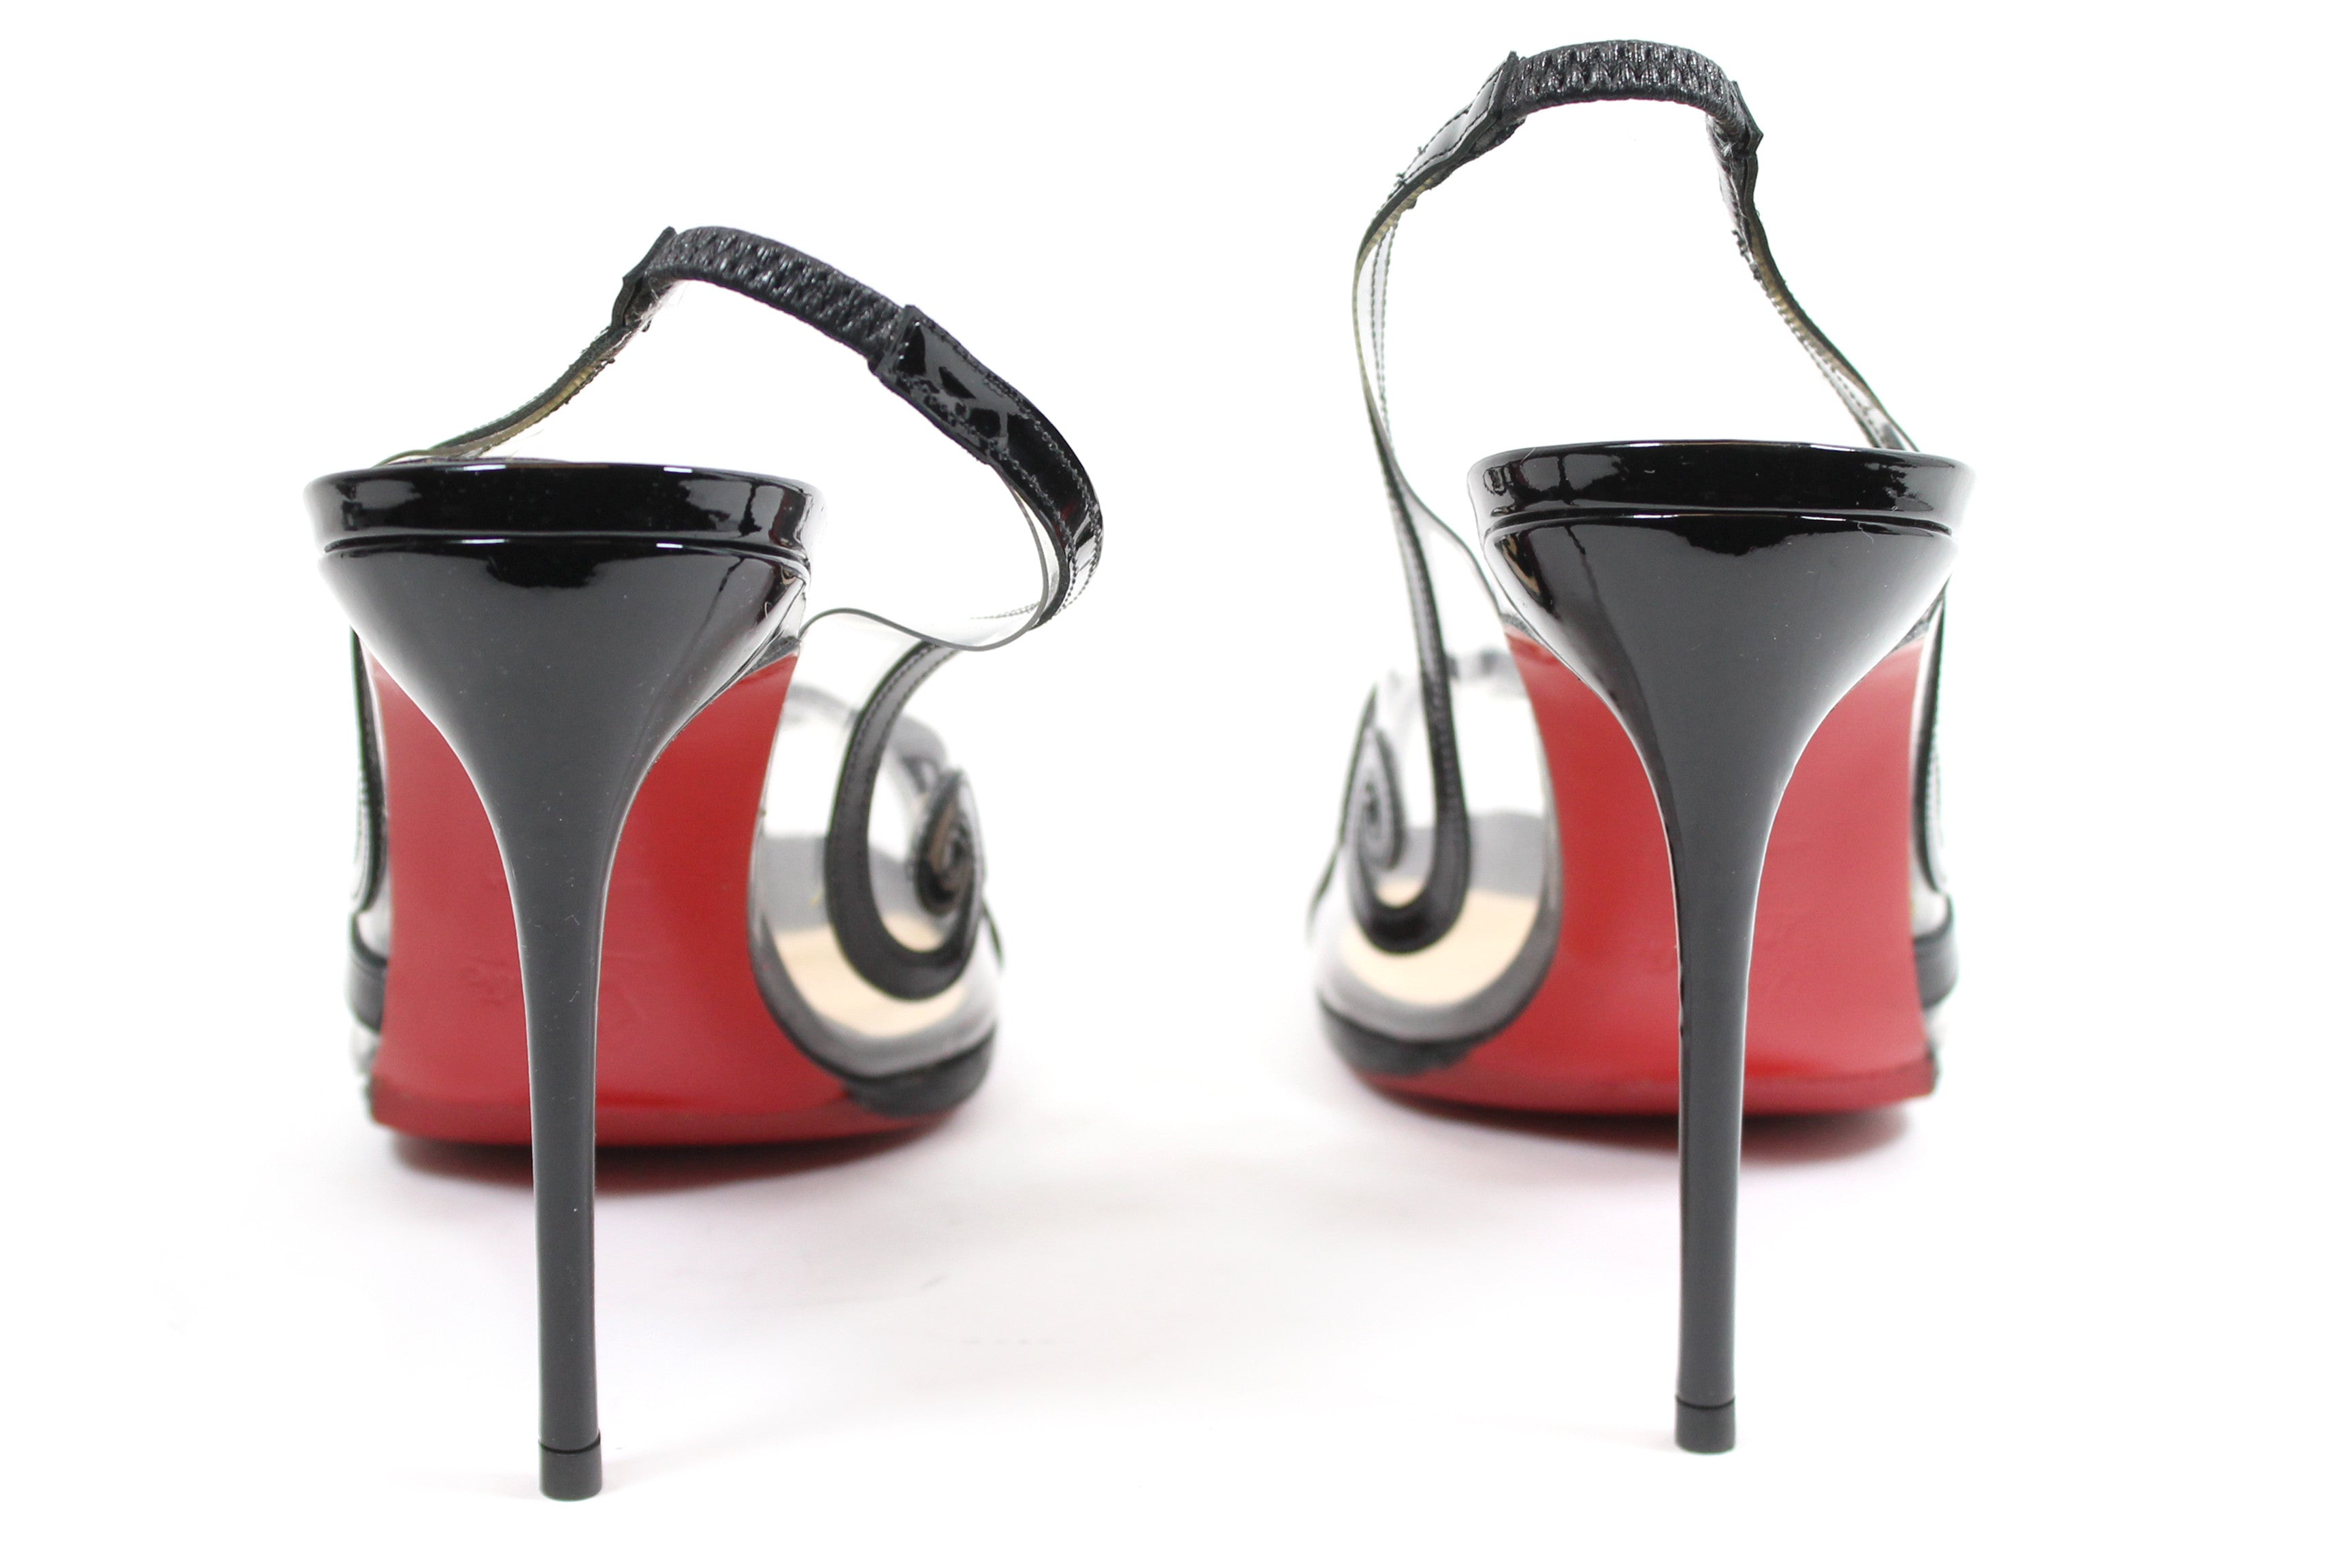 Christian Louboutin 'Au Hameau' Black Patent Leather PVC Slingbacks (Size 39.5)